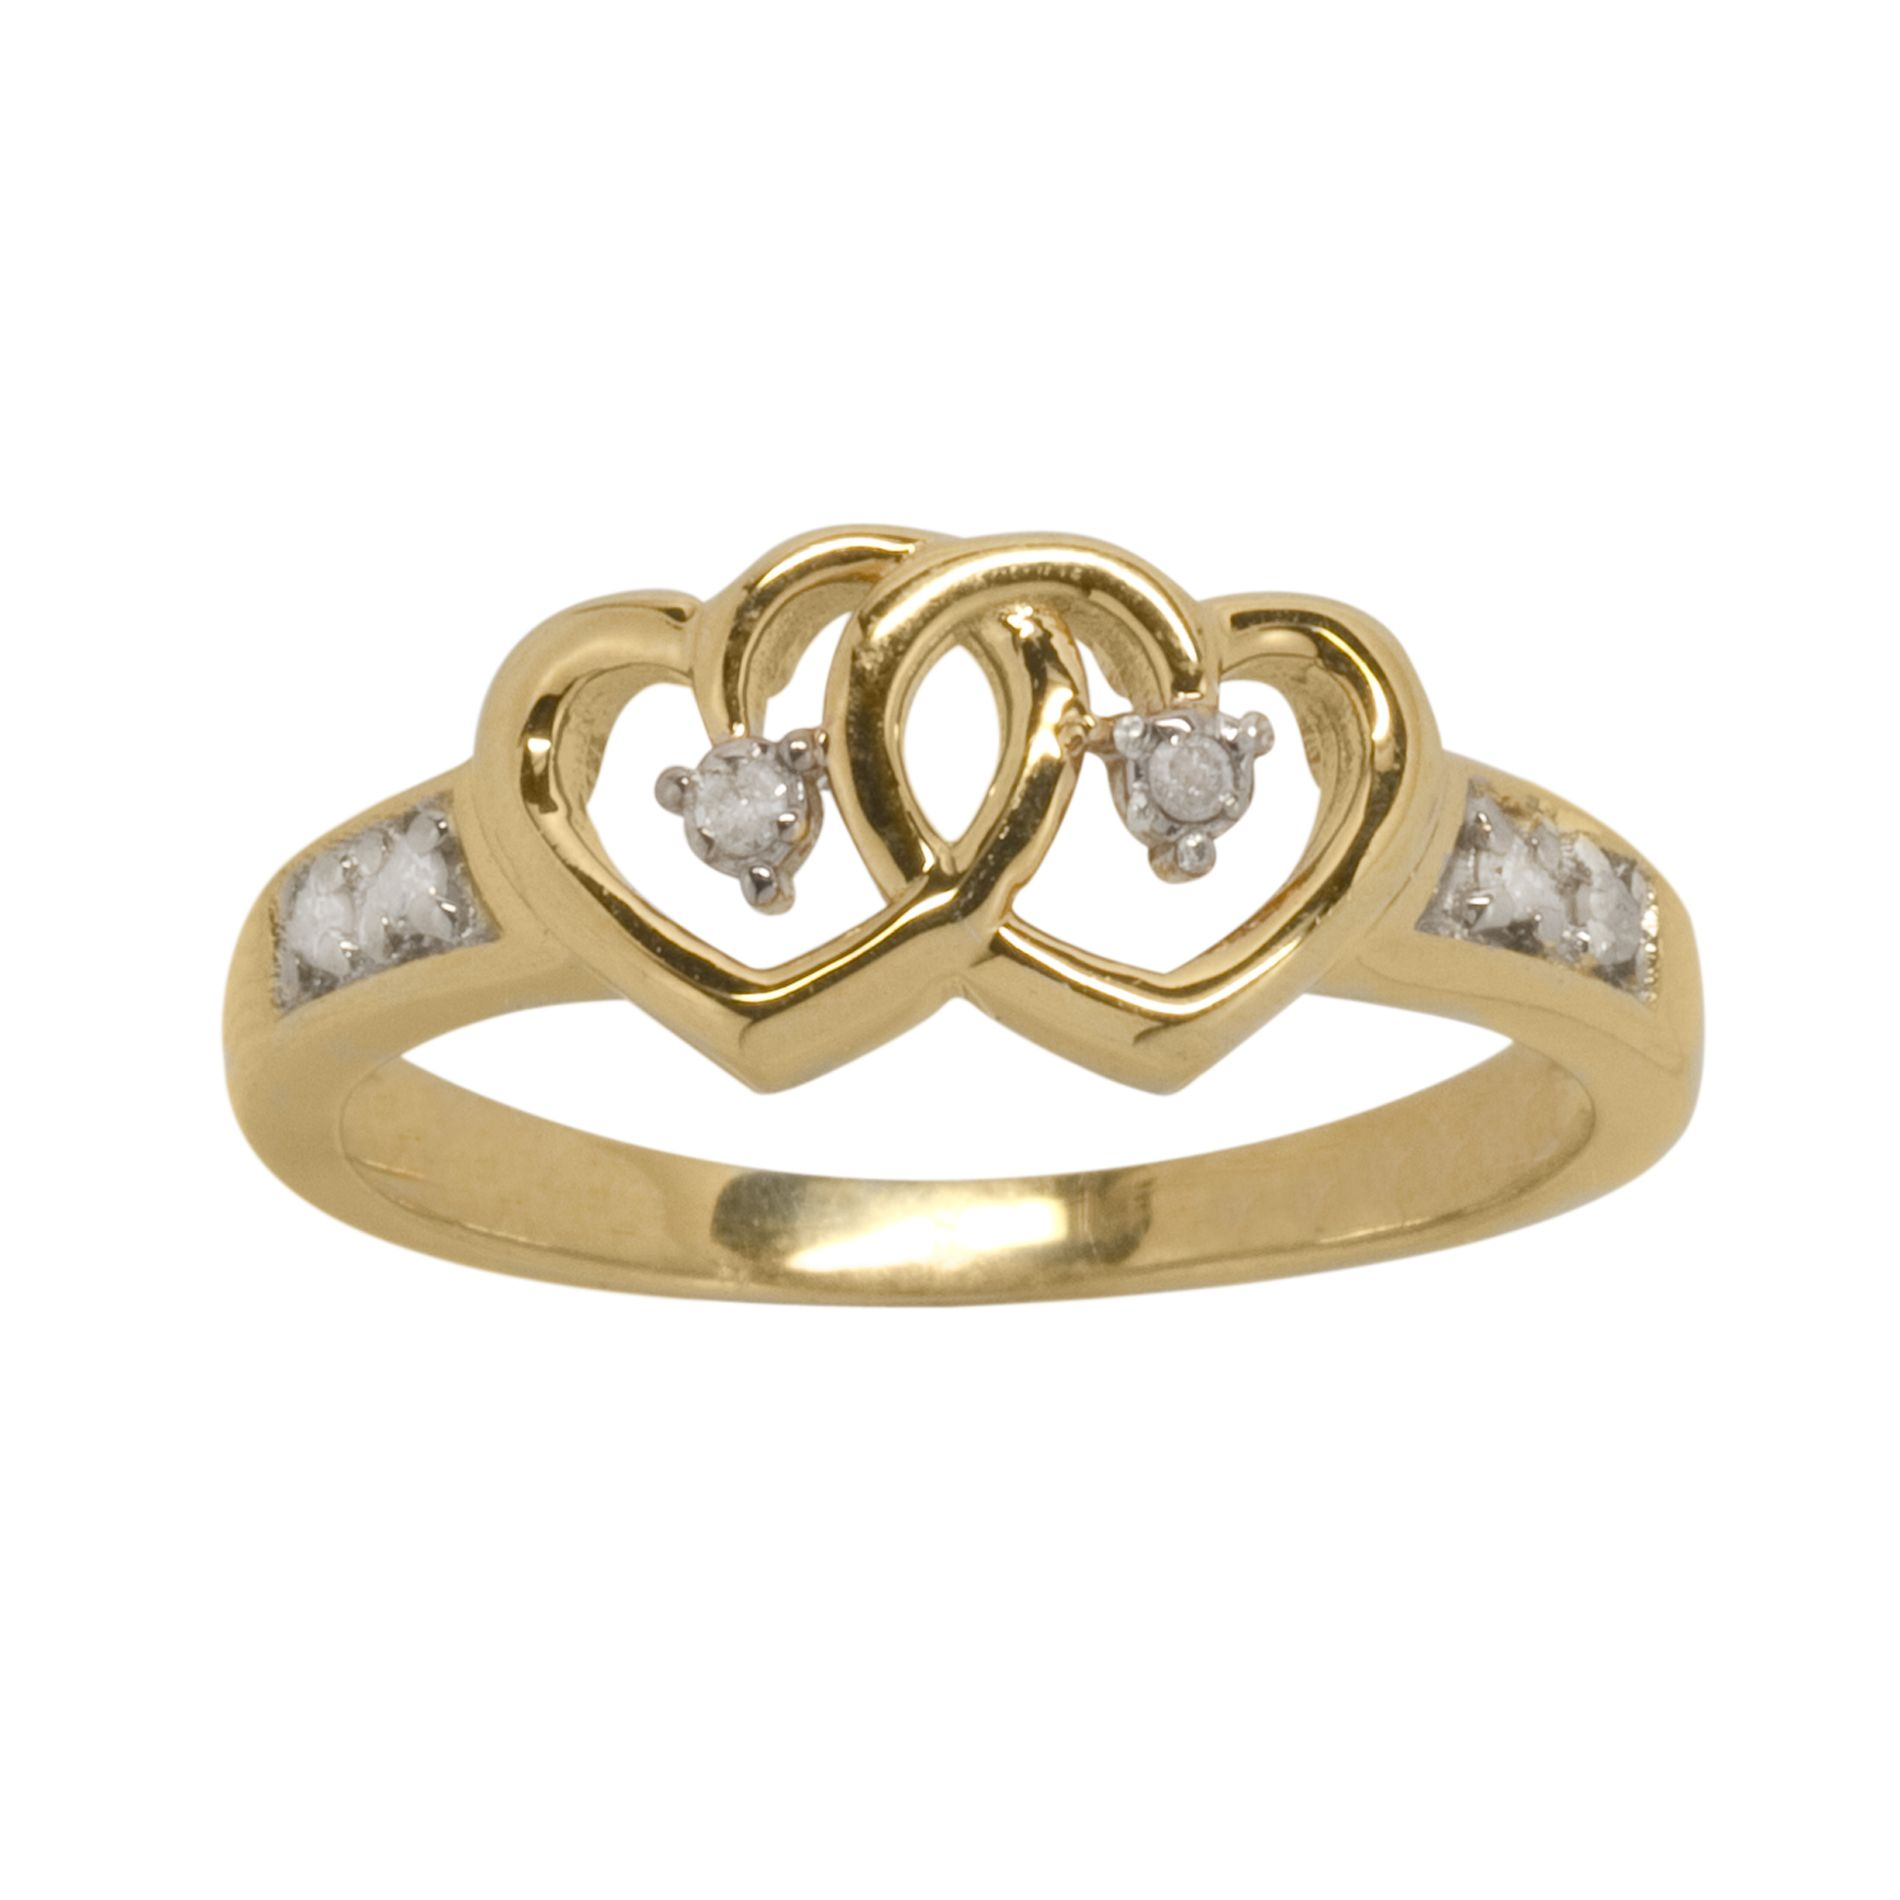 Diamond Accent Heart Ring in 14k Gold over